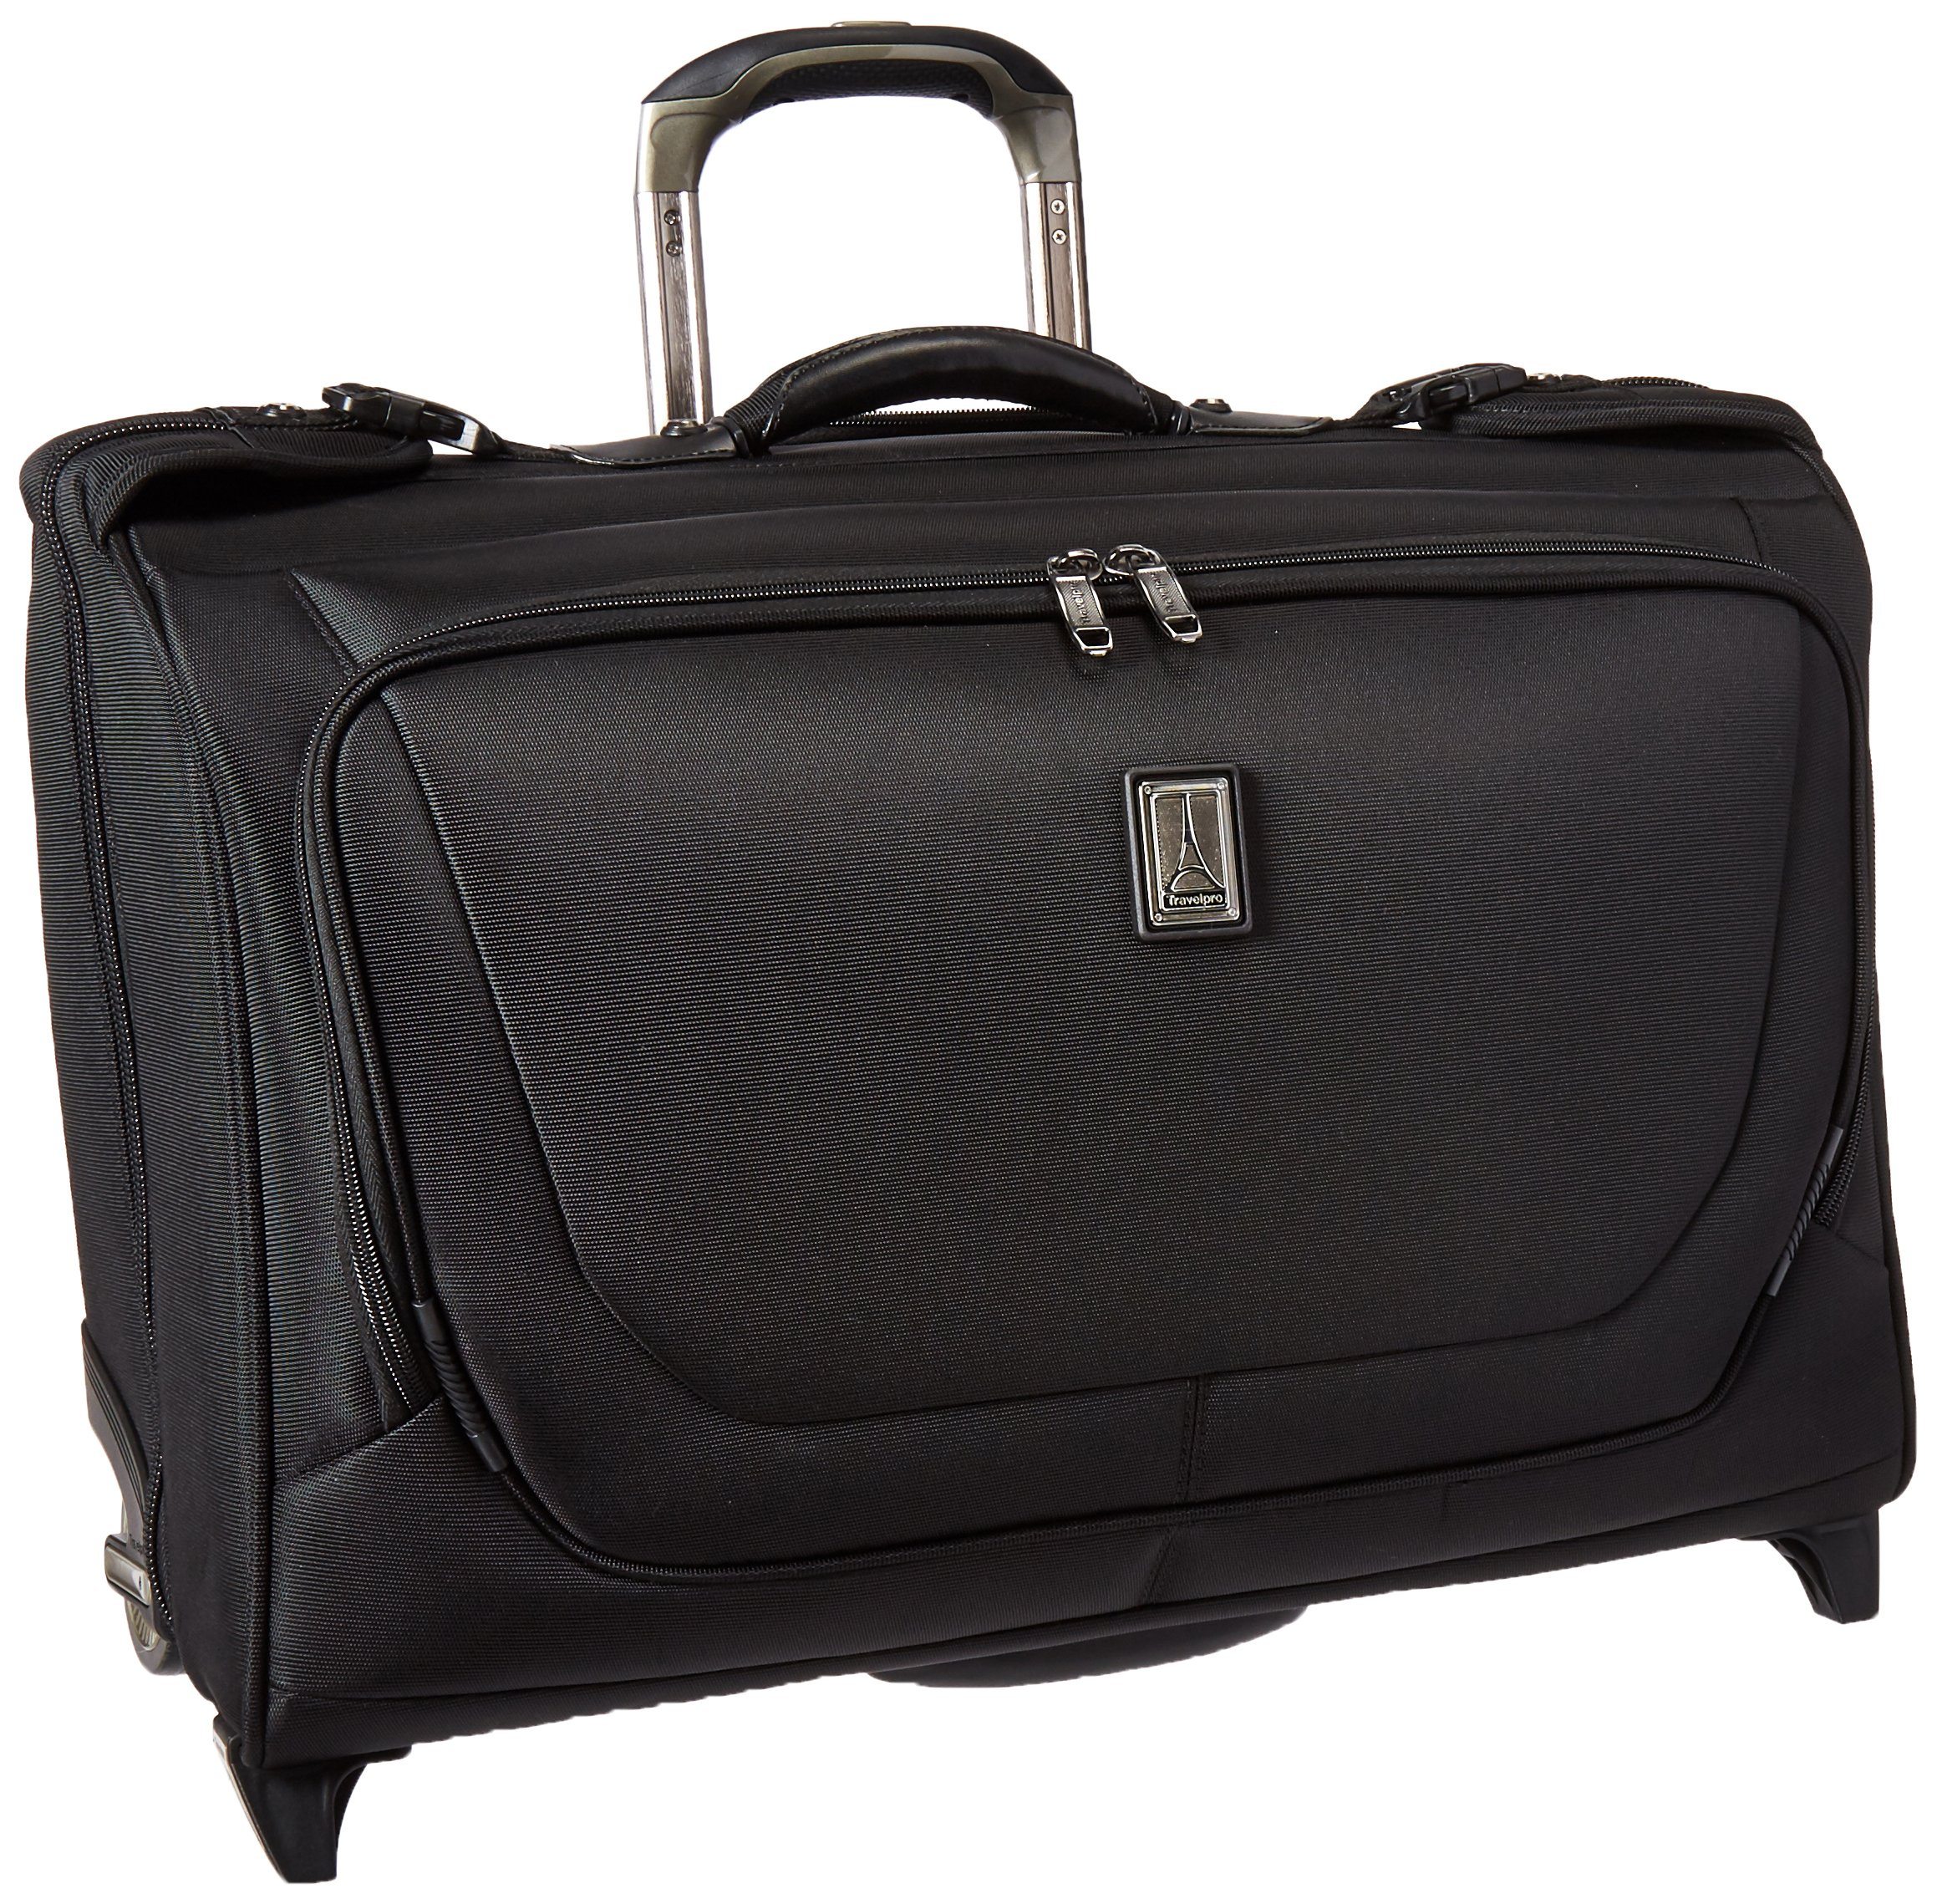 Travelpro Crew 11 Carrry-on Rolling Garment, Black by Travelpro